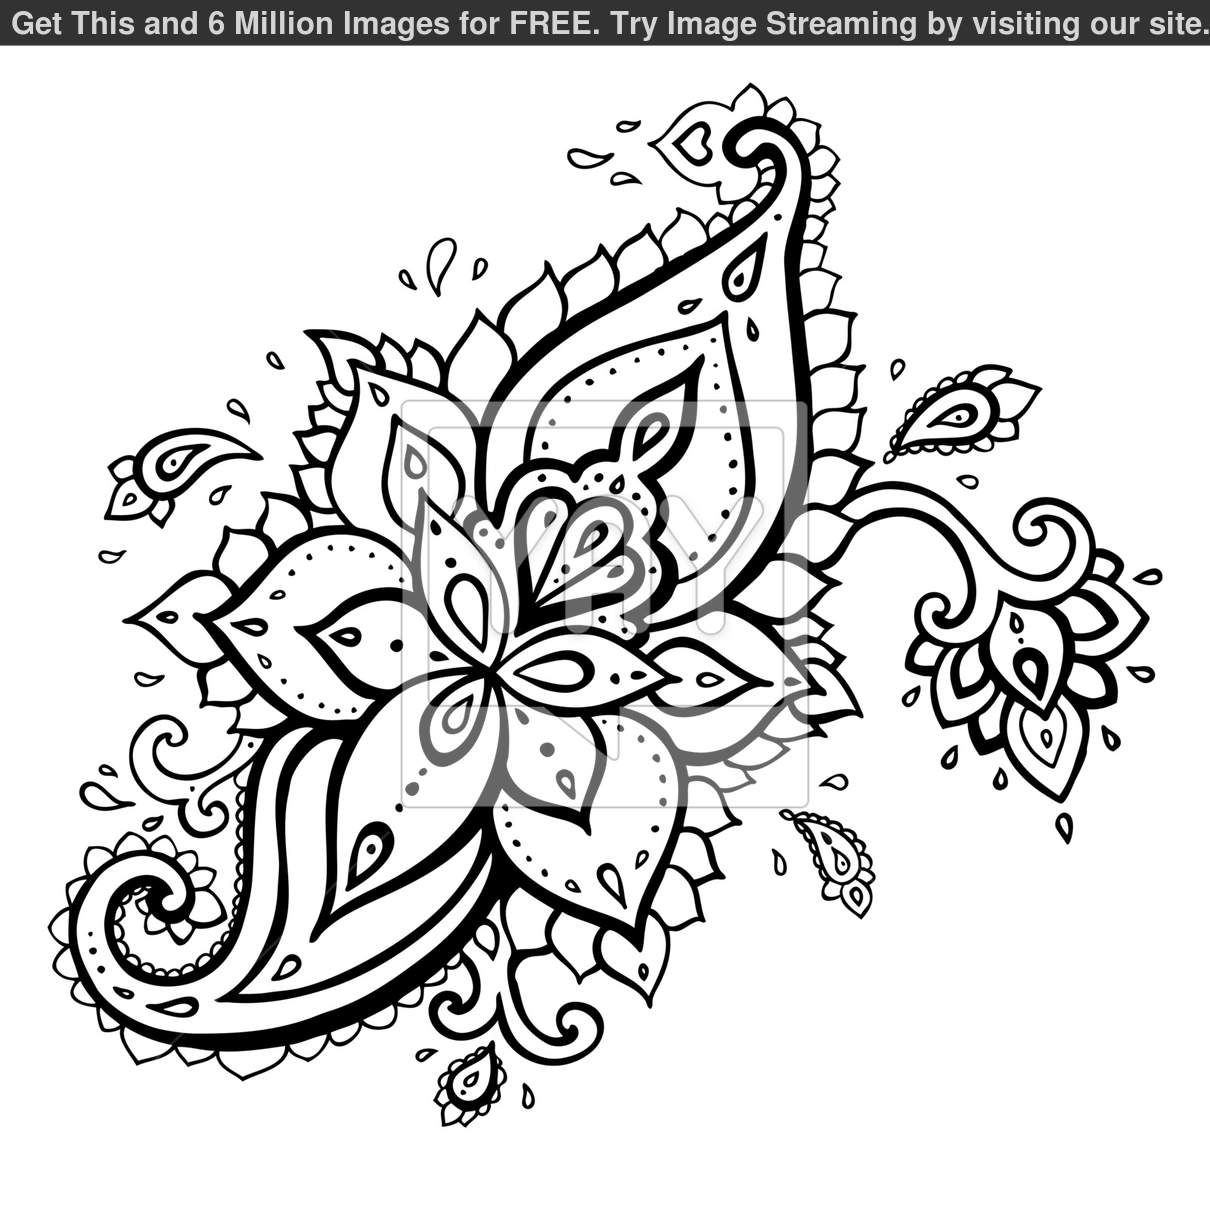 It's just a graphic of Dynamite Printable Henna Stencils